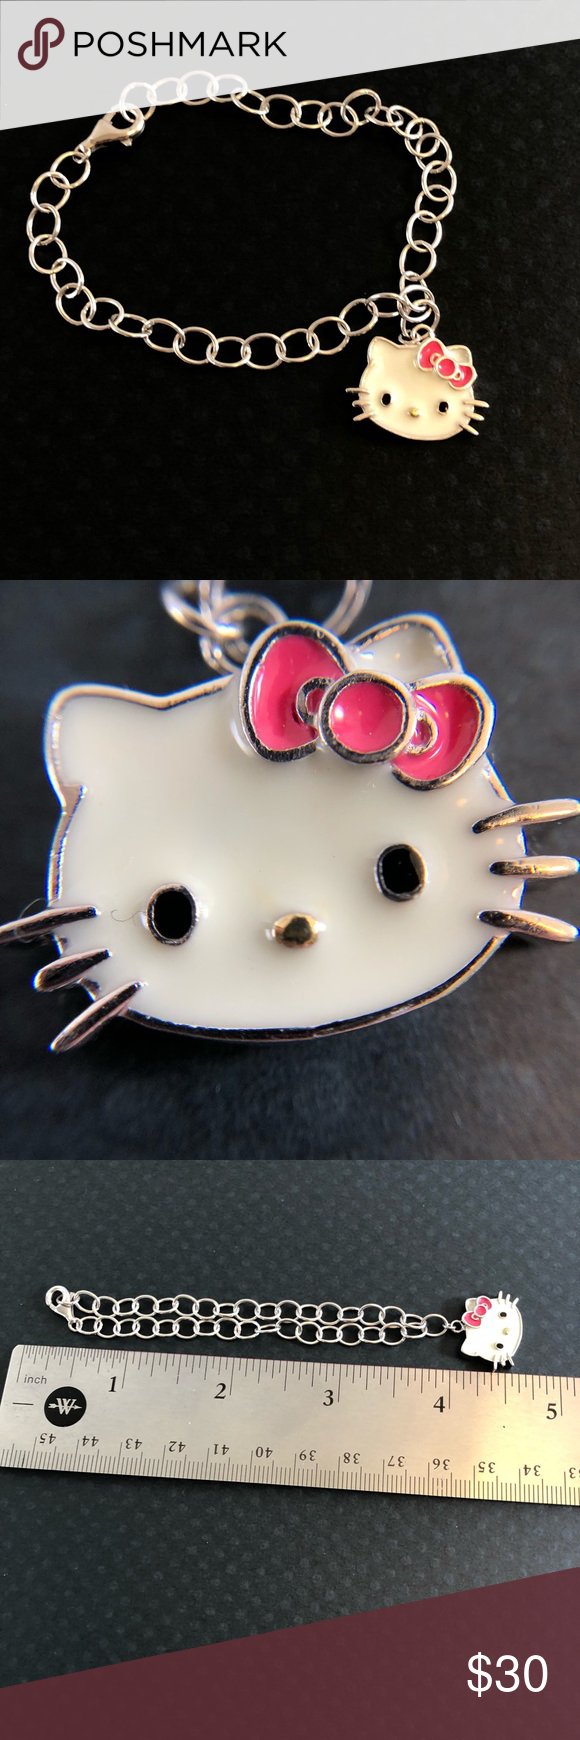 6139550ad Hello Kitty Fine Jewelry Pink Bow Bracelet Adorable .925 sterling silver  Sanrio Hello Kitty pink